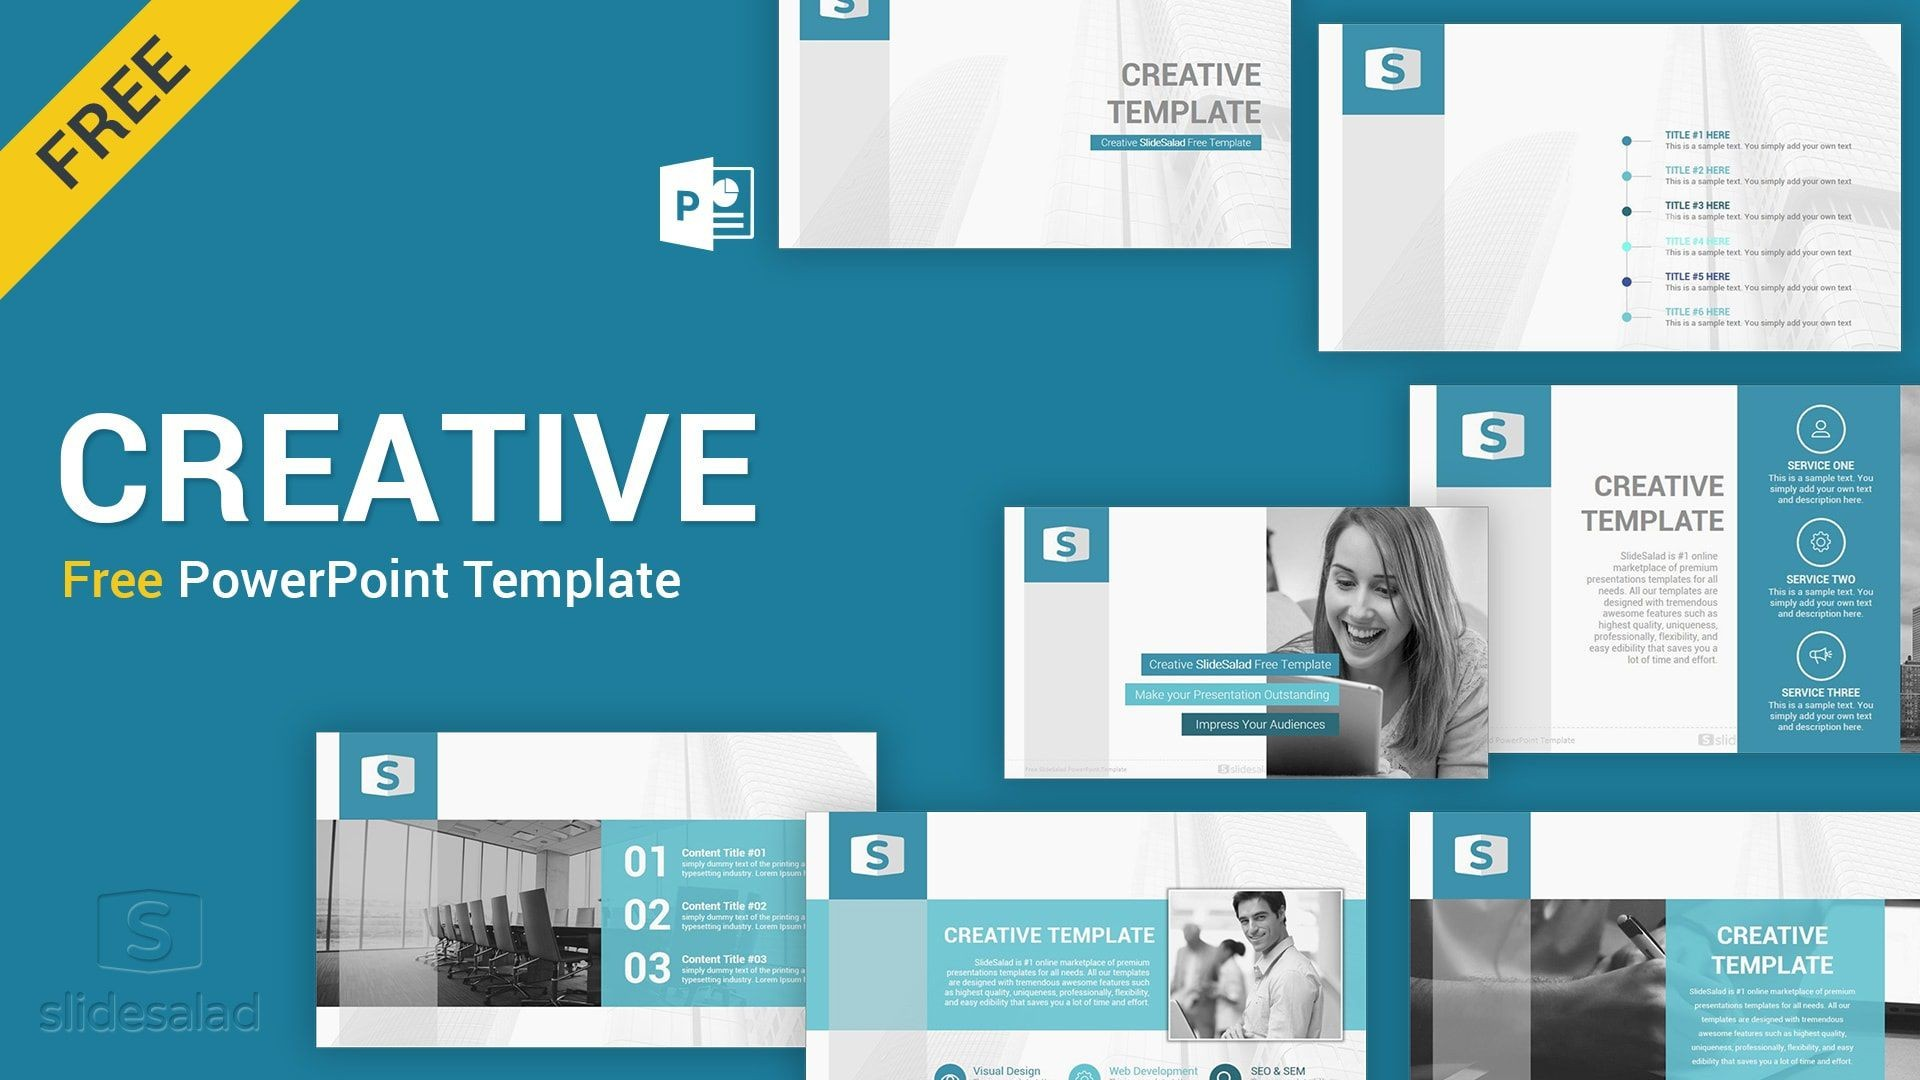 006 Excellent Simple Ppt Template Free Download For Project Presentation Highest Quality 1920